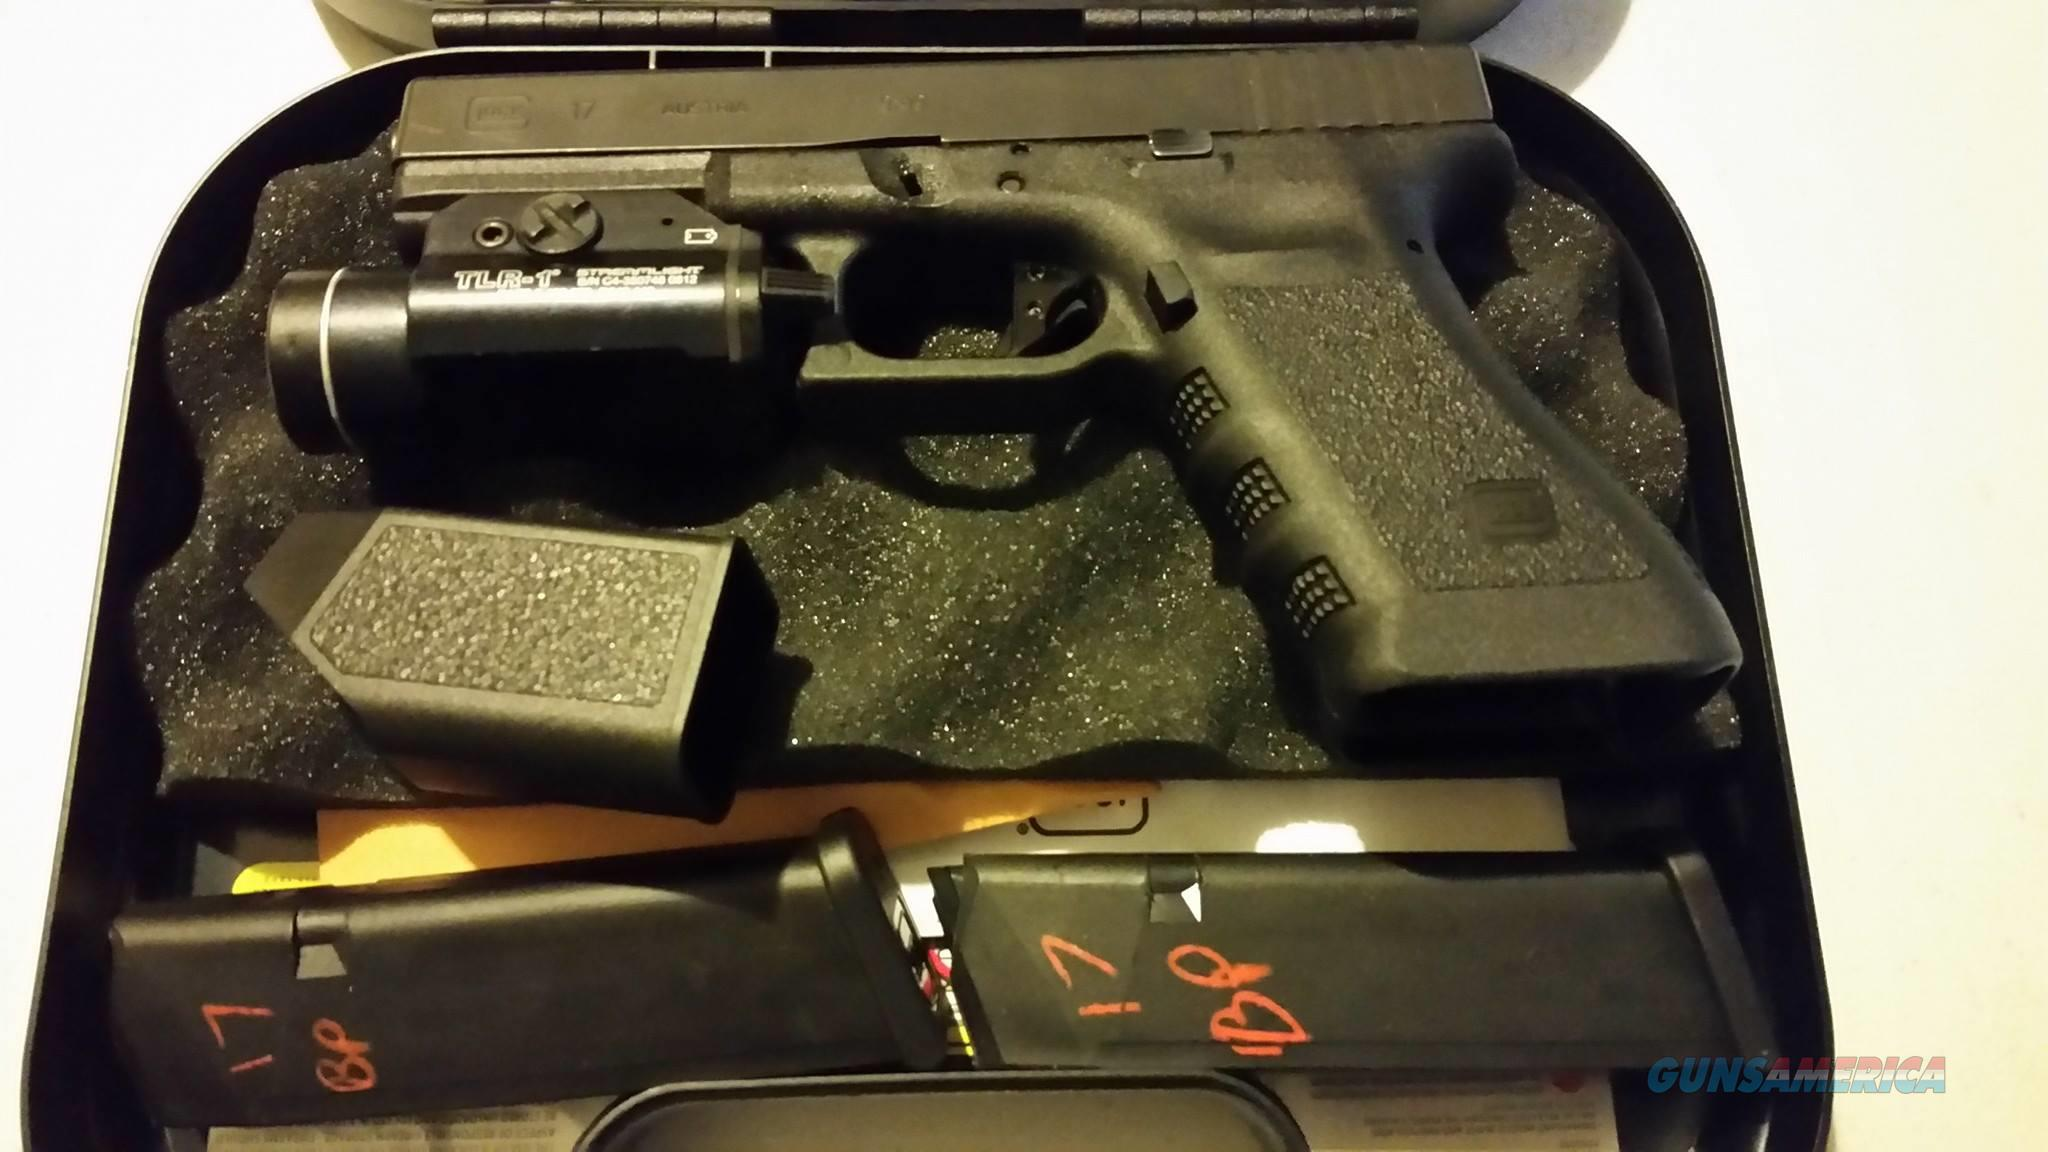 FREE SHIP/NO CC FEES, USED GLOCK 17 GEN 3 9MM FS W/EXTRAS  Guns > Pistols > Glock Pistols > 17